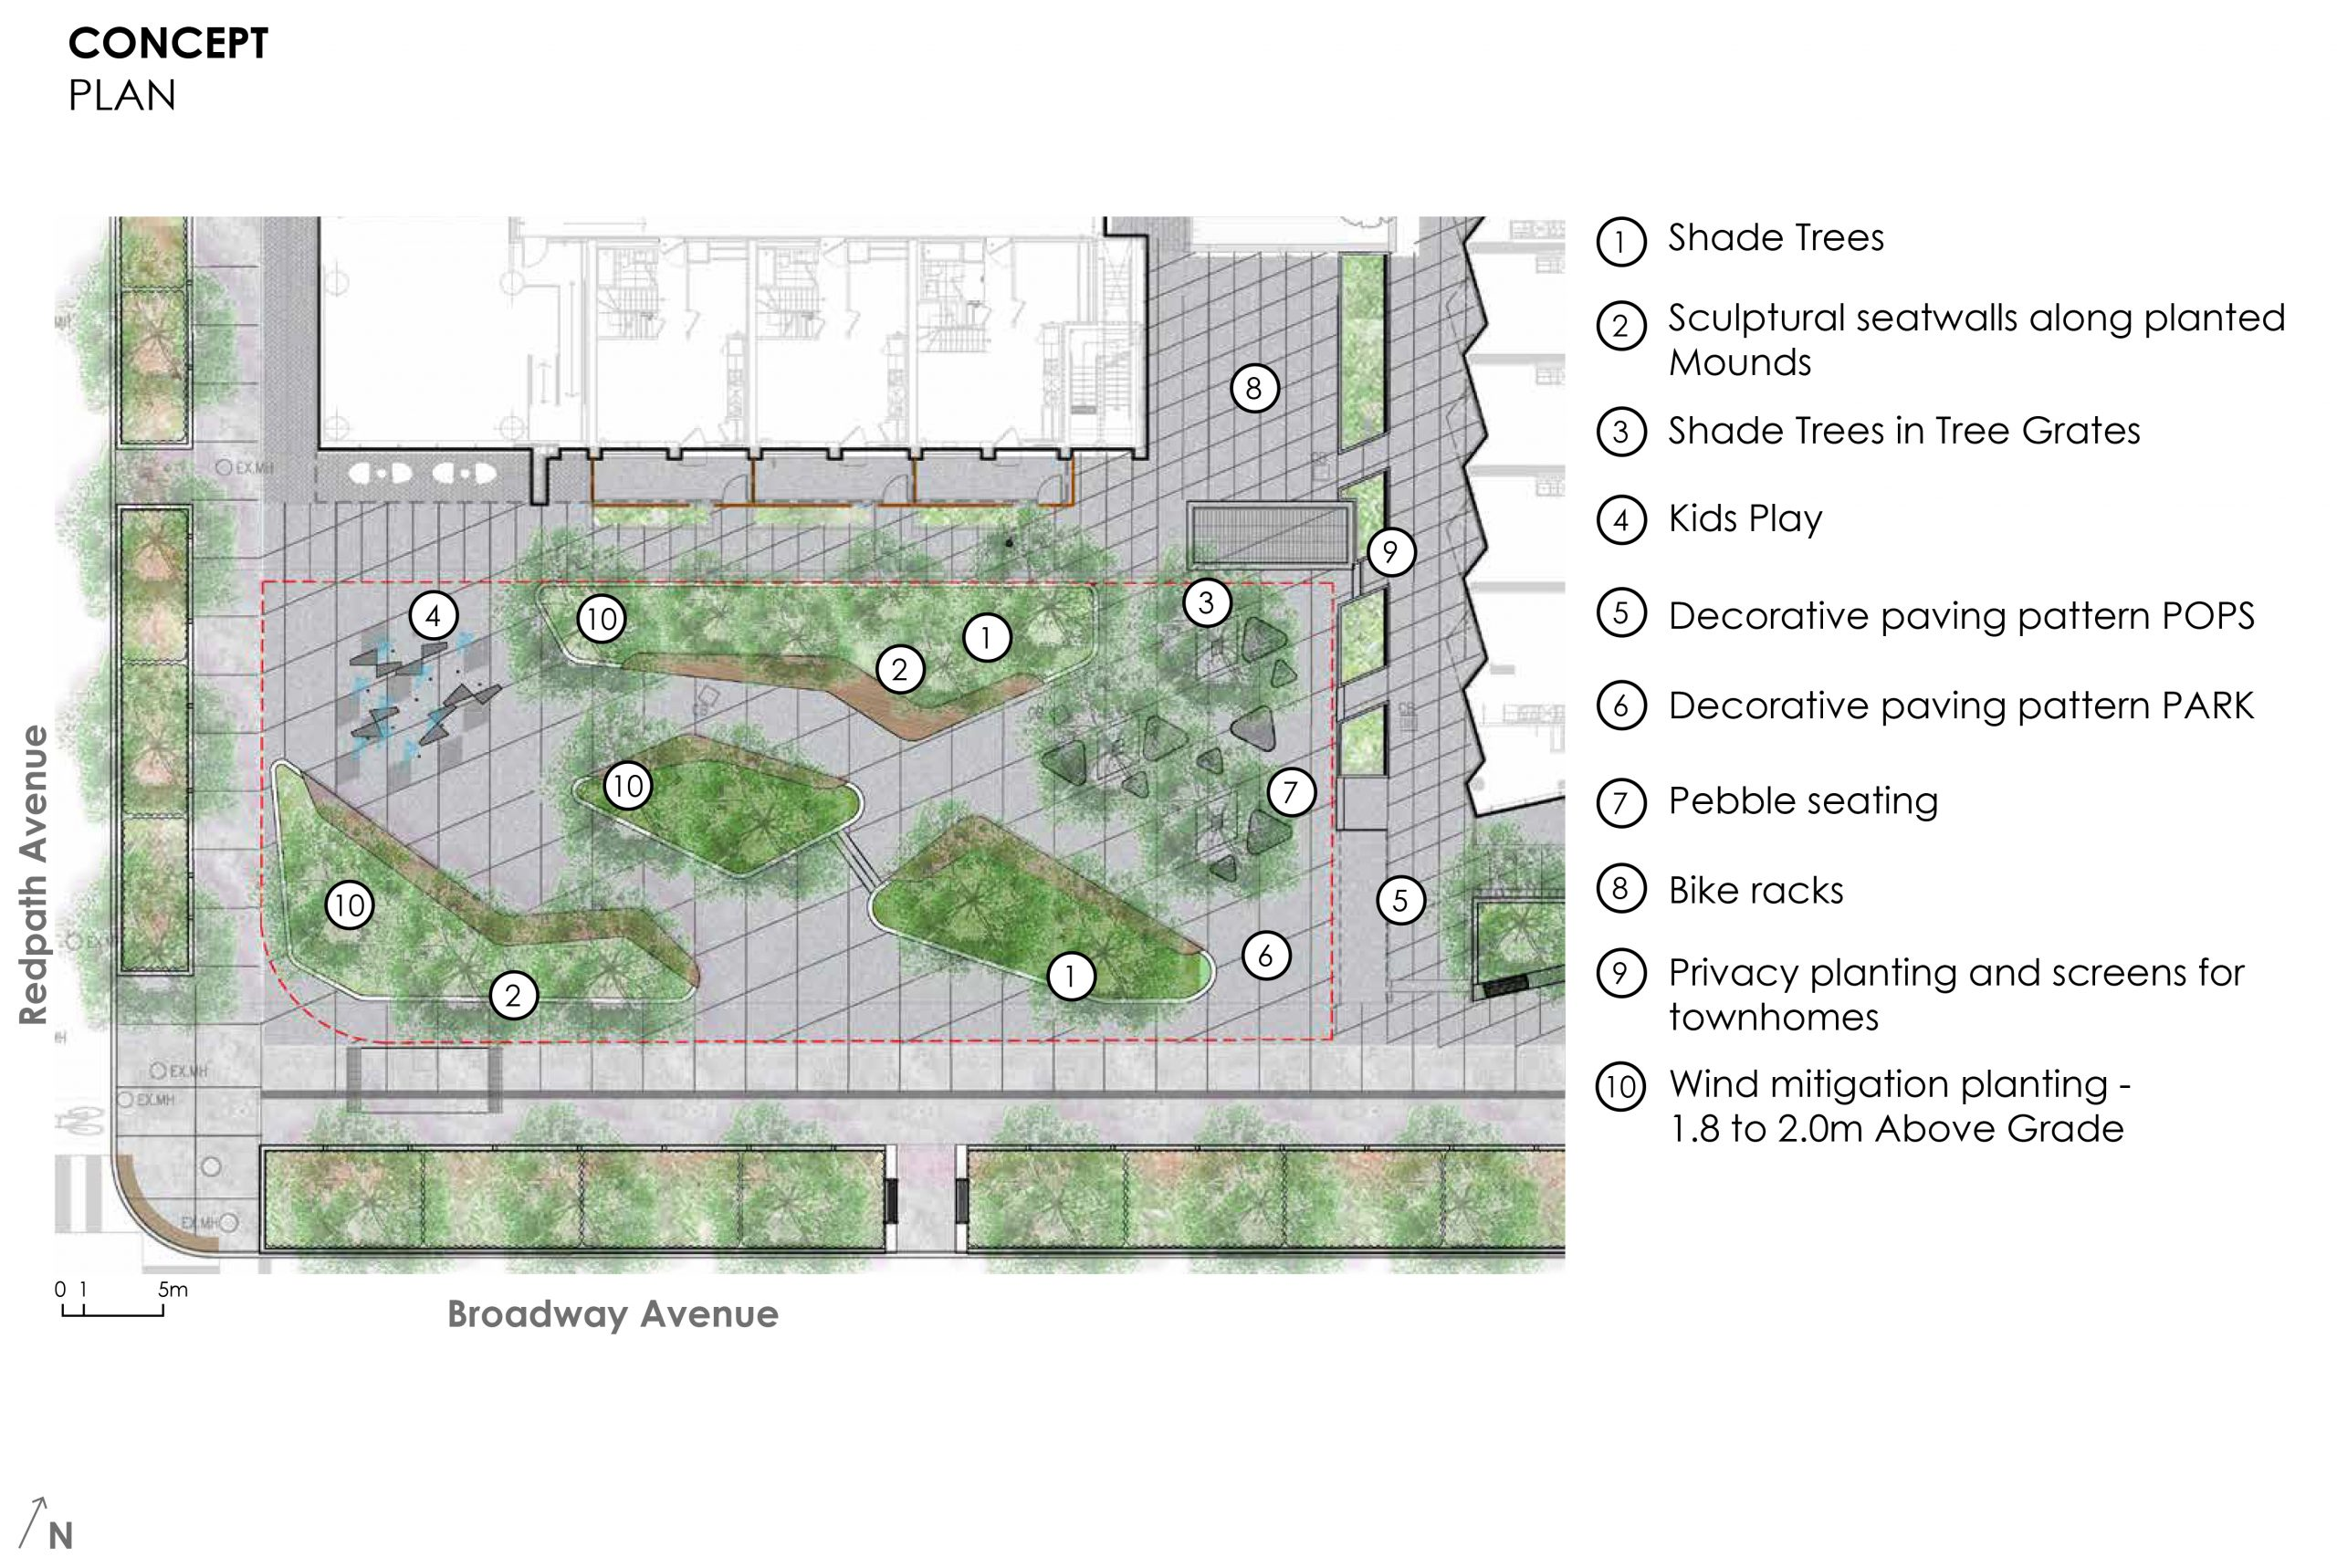 An image of the proposed concept plan for the new park at 100 Broadway Avenue which gives a closer look at the park features and their location within the park. The new features include trees for added shade, sculptural seatwalls along planted mounds, tree grates, children's water play features, decorative paving, pebble seating, bike racks, and privacy planting and screens for townhomes.